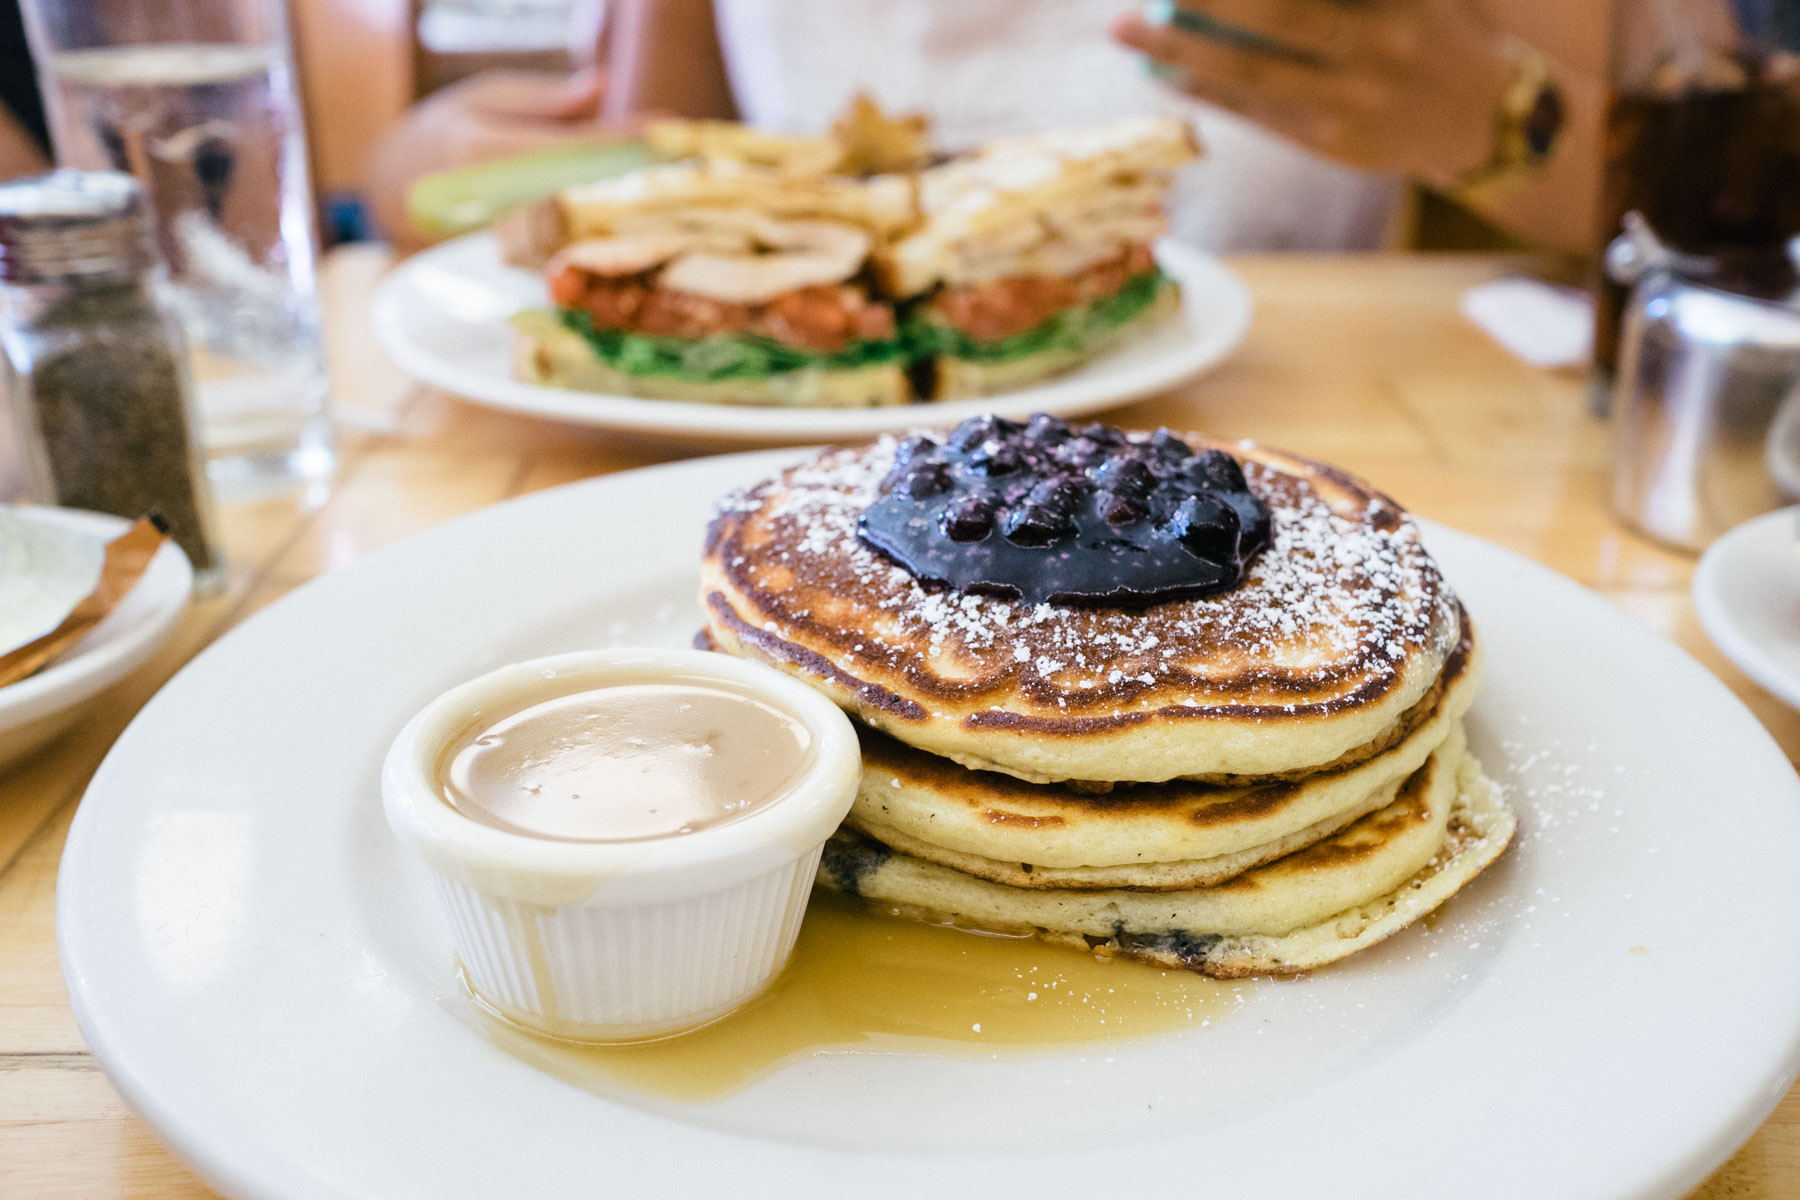 st-baking-company-lower-east-side-clinton-street-brunch-best-pancakes ...